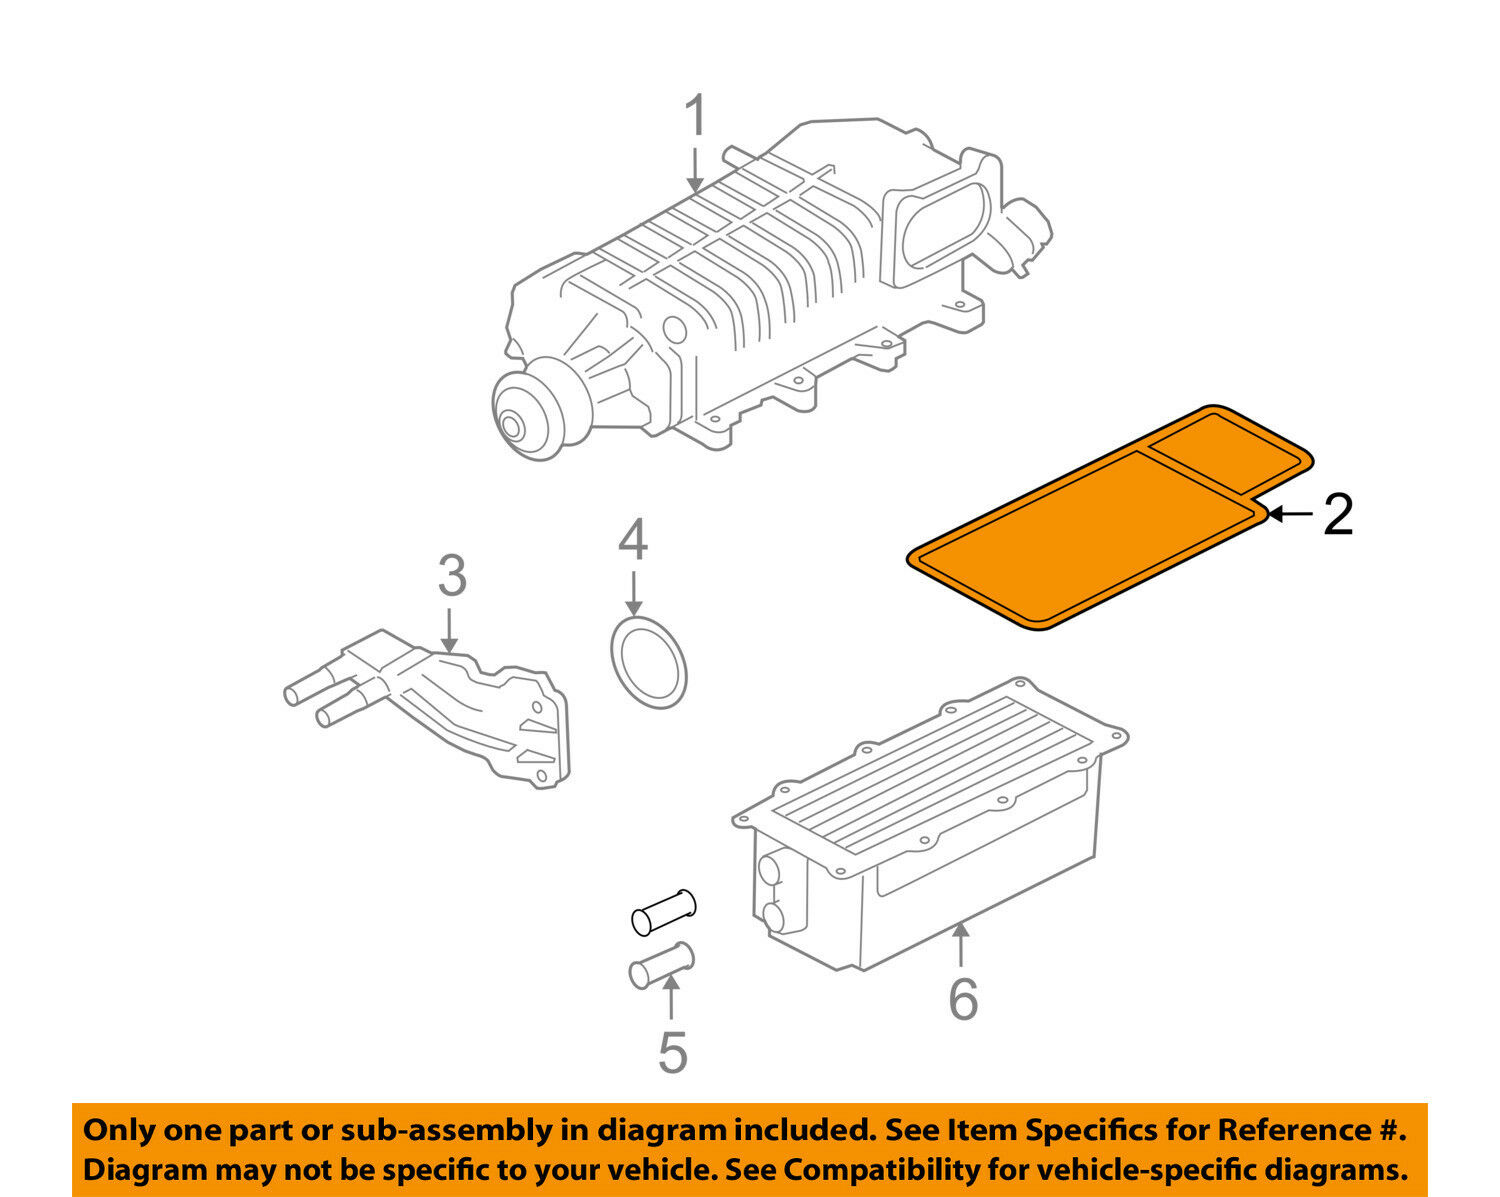 Ford Oem 10 14 Mustang Engine Intake Manifold Gasket 7r3z9h486aa With Diagram 1 Of 2only Available See More